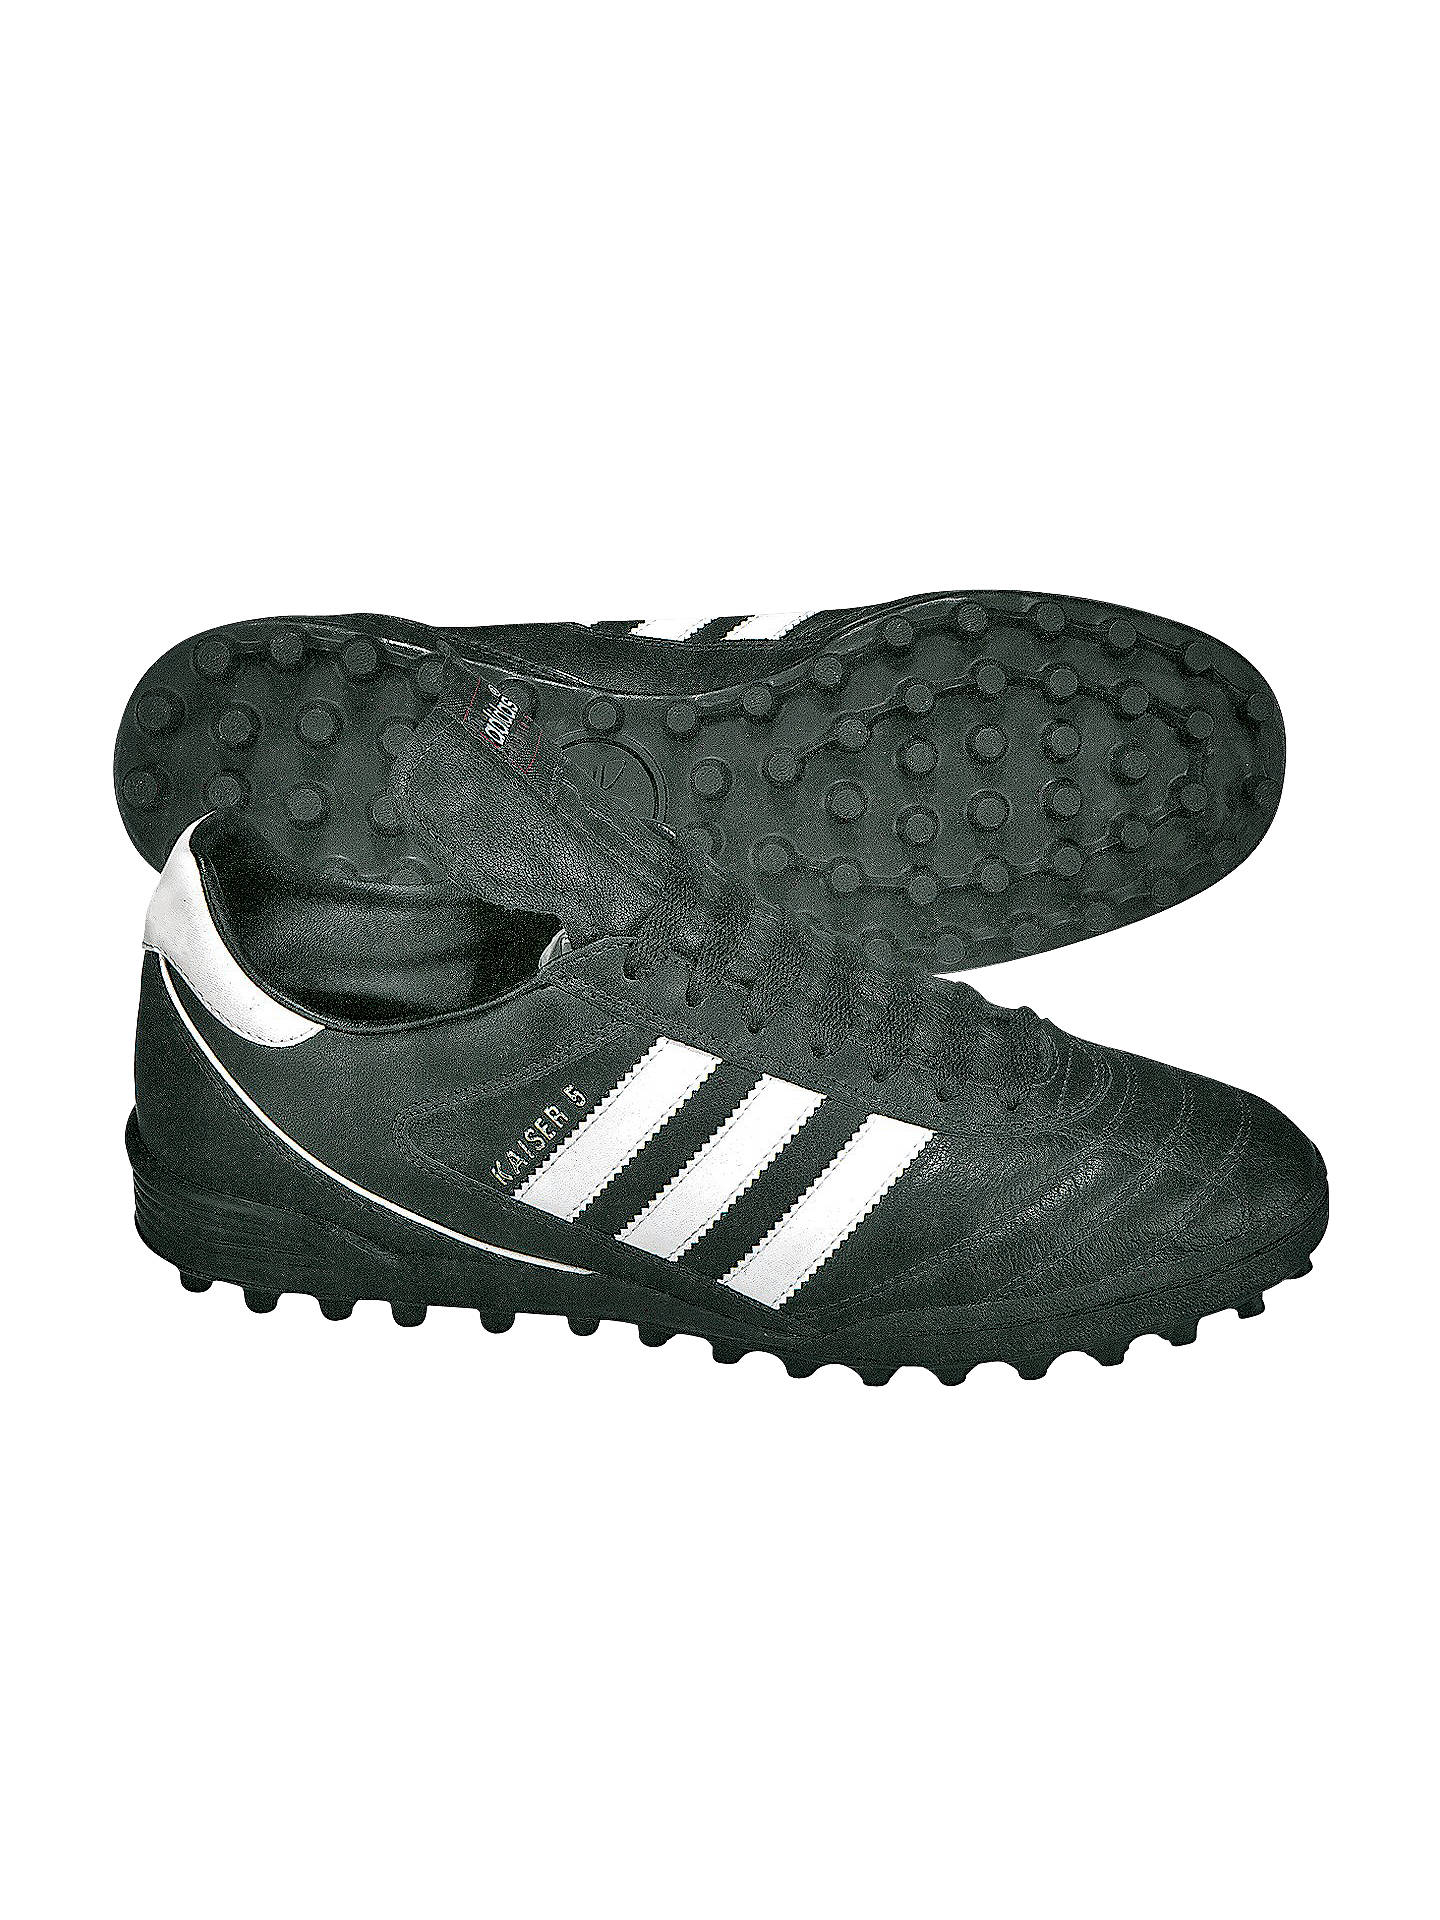 37e647b23 Adidas Kaiser 5 Team Men's Astro Turf Football Boots at John Lewis ...